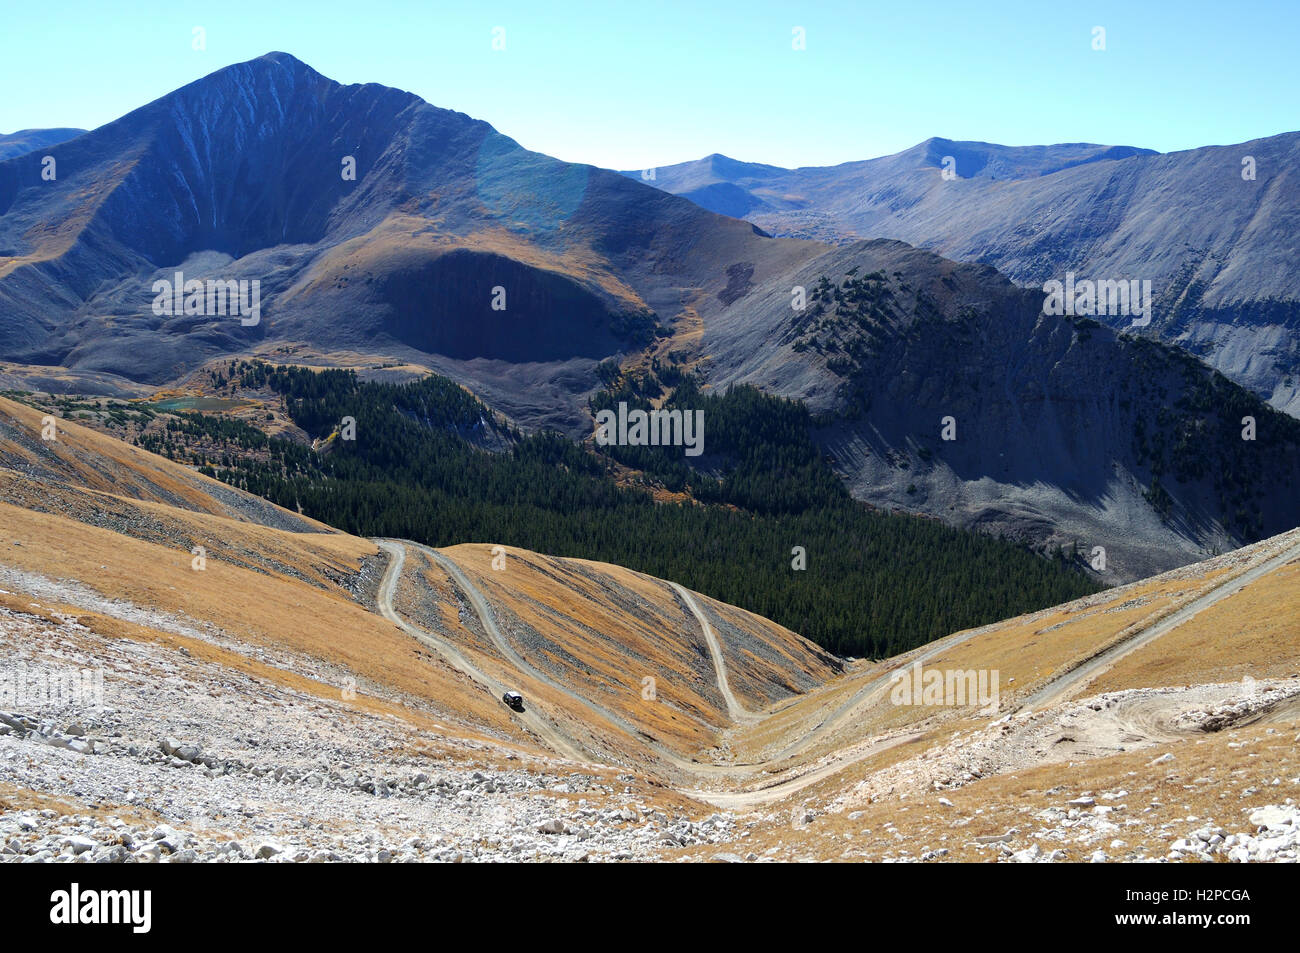 The Baldwin Gulch Jeep road on the approach to Mount Antero, Colorado - Stock Image